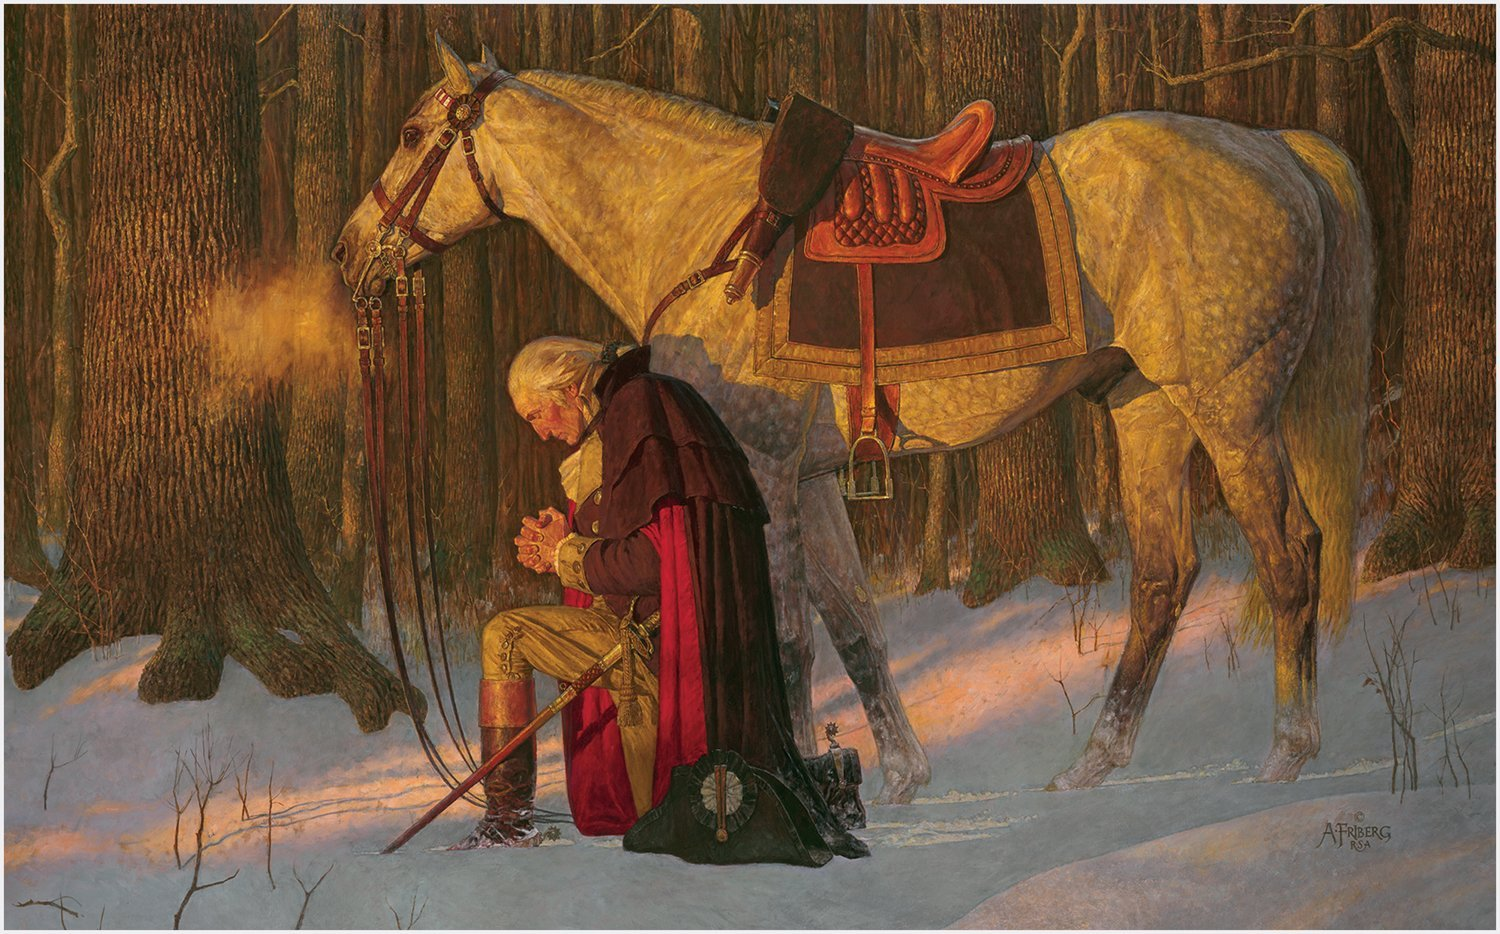 The Prayer at Valley Forge - Arnold Friberg